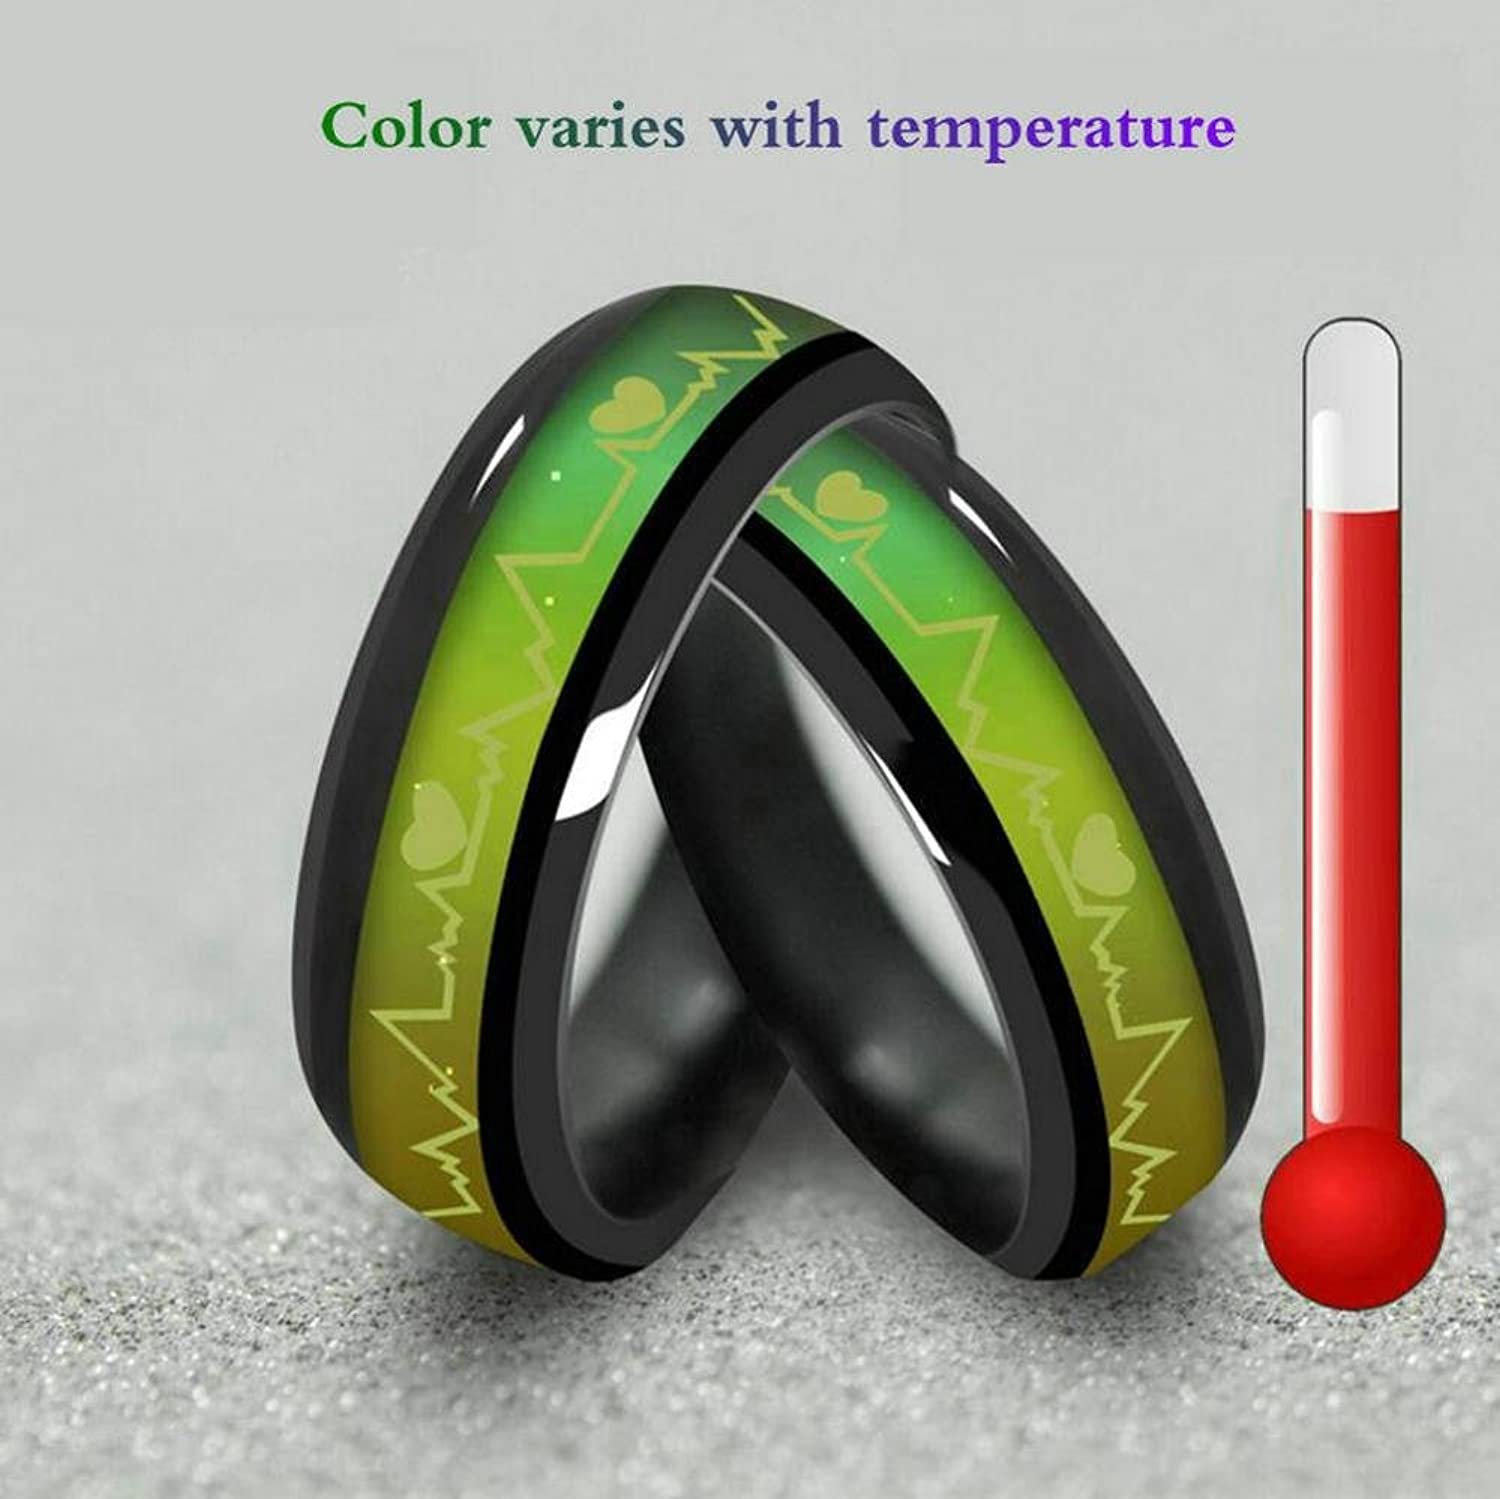 Amazon titanium steel mood rings for lovers emotional change amazon titanium steel mood rings for lovers emotional change color temperature feeling heartbeat ecg rings jewelry nvjuhfo Choice Image